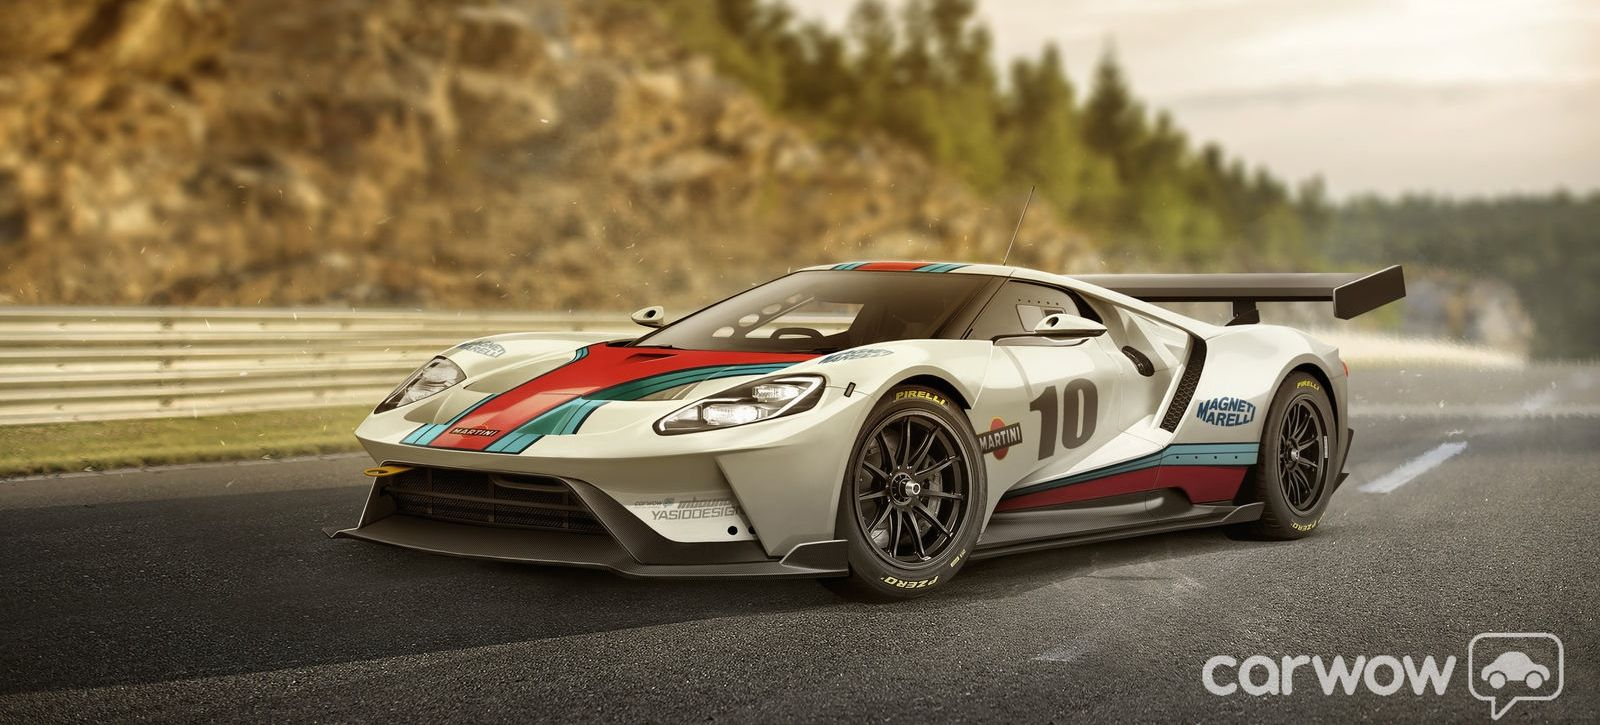 Here S A Ford Gt Race Car With A Martini Livery Ford Gt Super Cars Gt Cars